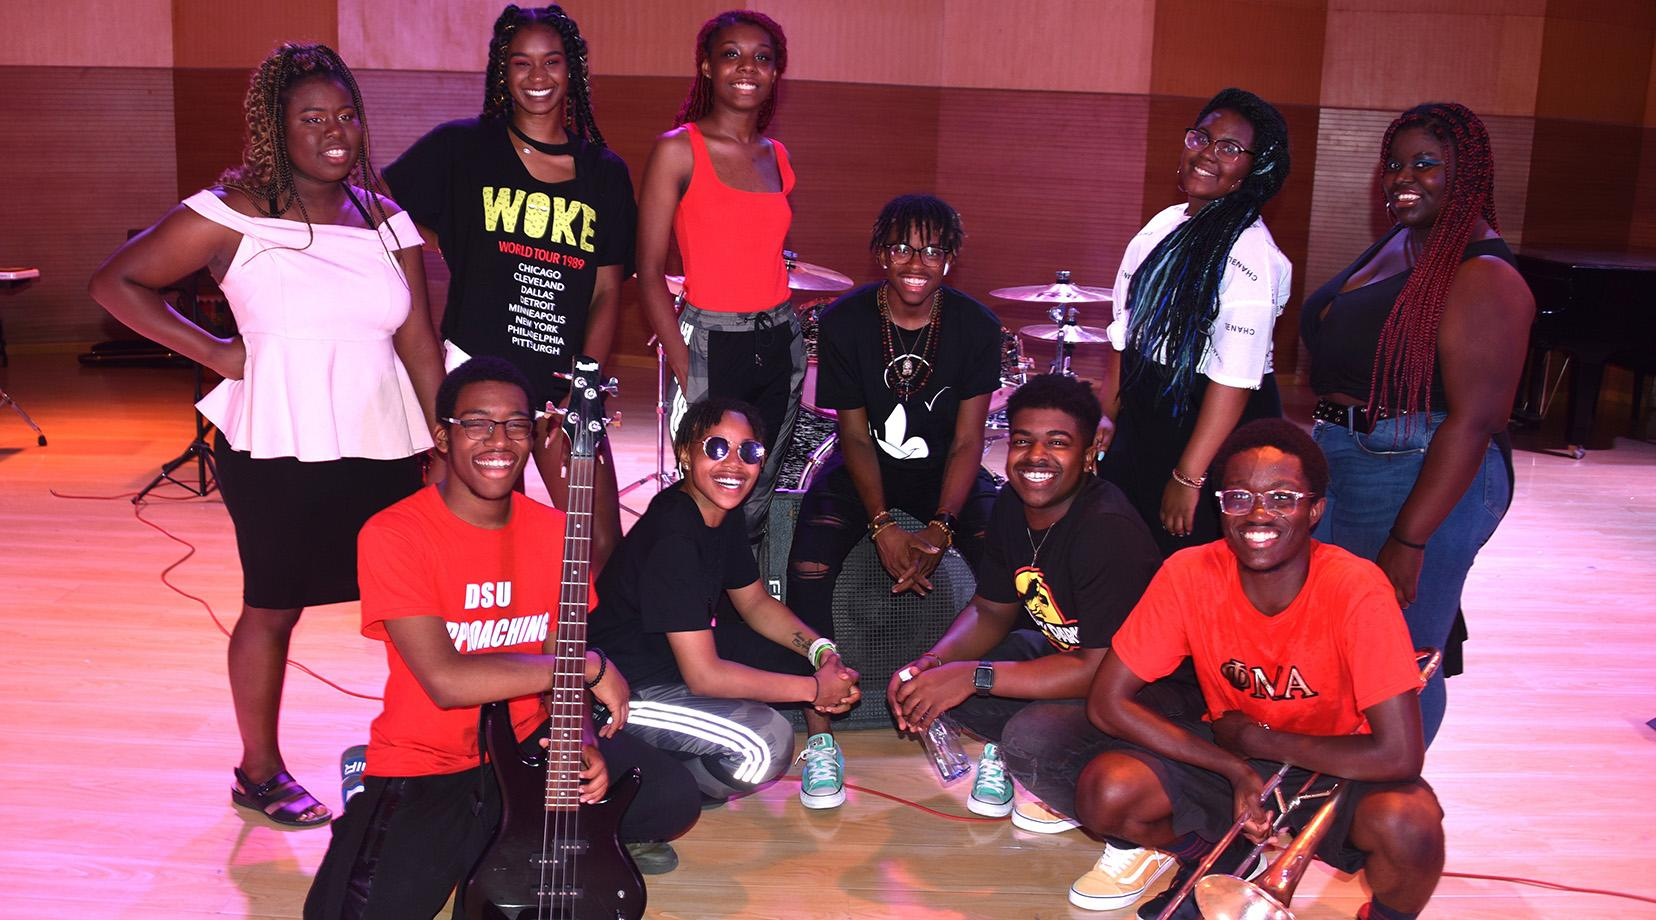 Members of the DSU Popular Music Ensemble are: (kneeling l-r) Kamin Clark, Imani Sulleman, Issachar Scroggins and Glamu Kpov; (standing l-r) Chloe Humphrey, Aishah Bradley, Beauty Marsh, Davyn Parham, Nireh Traylor and Mozella Matthews.